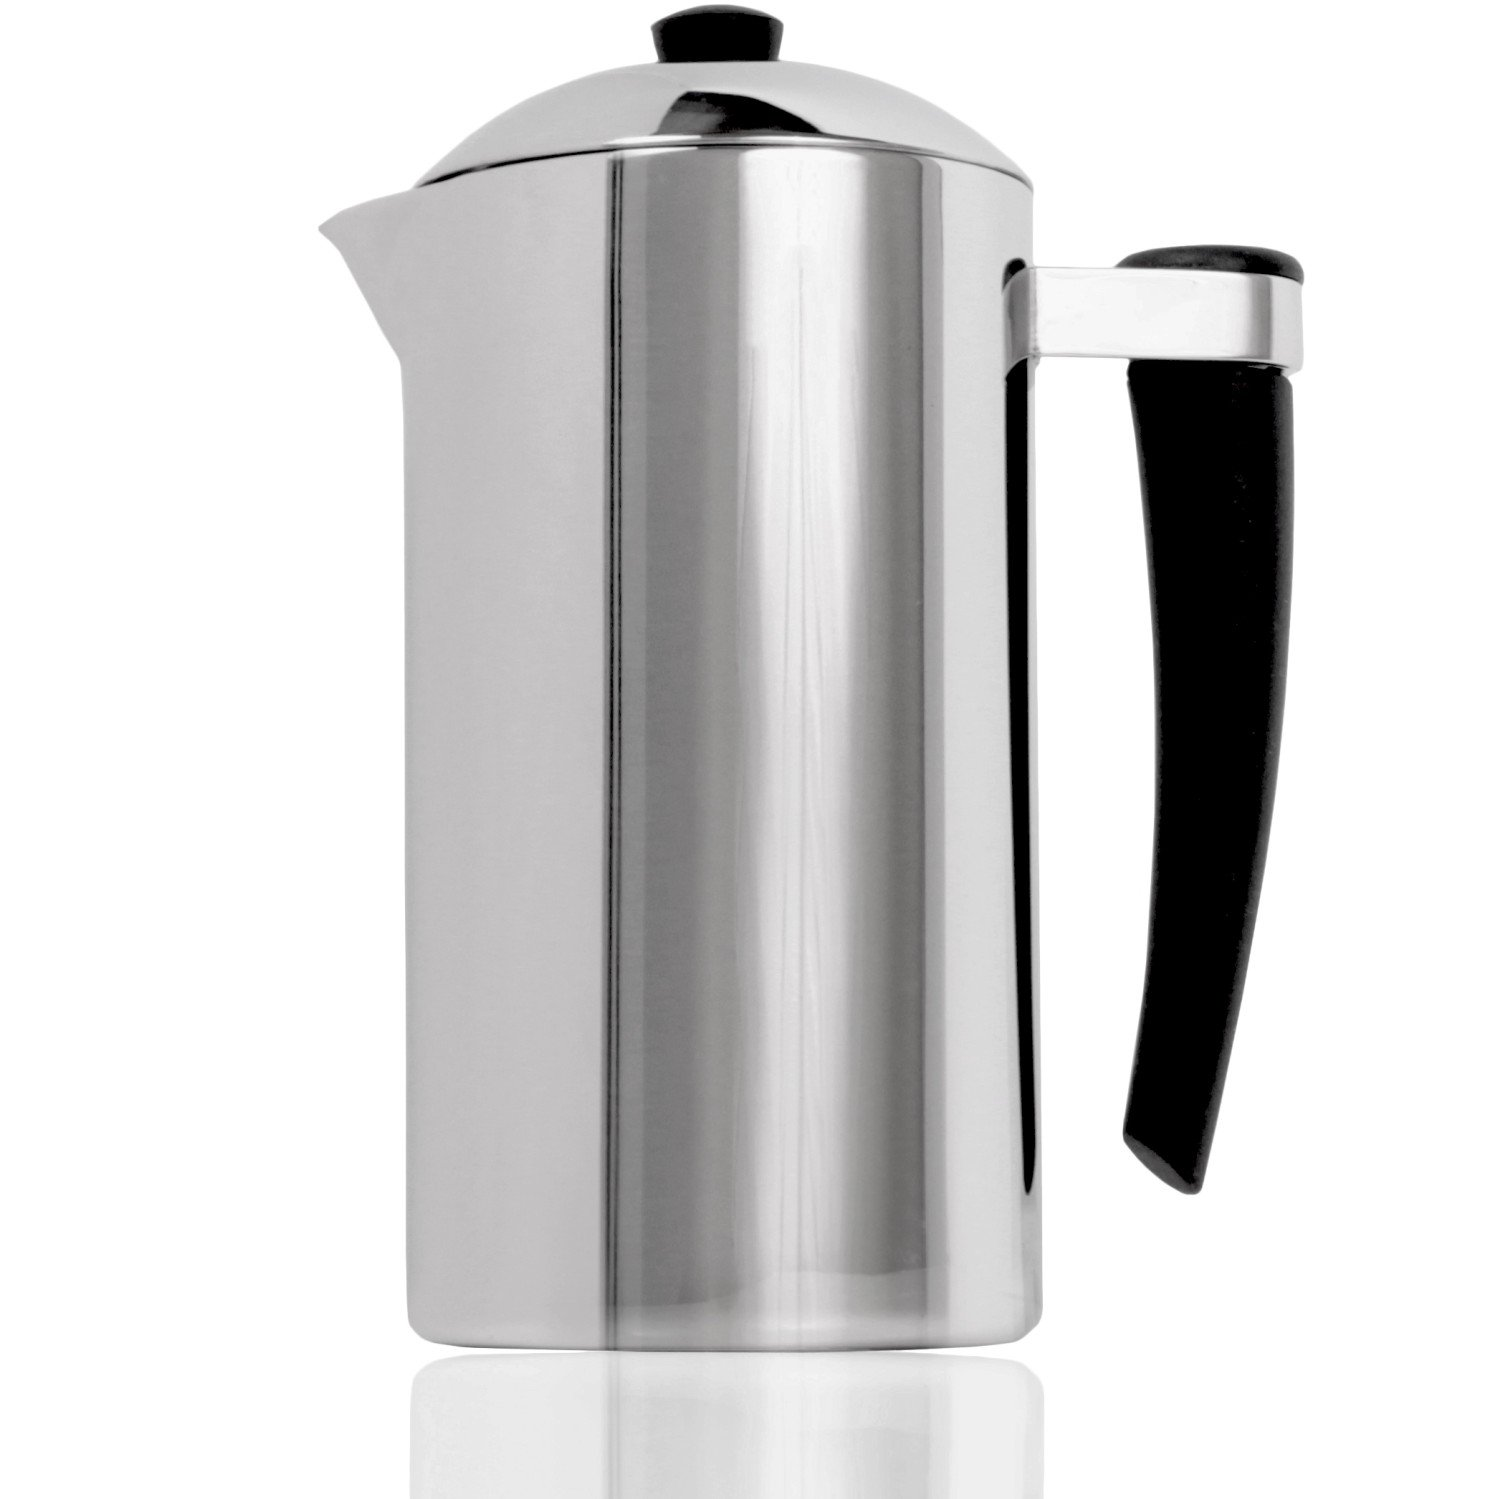 French Press Express Double-Wall Stainless Steel Coffee Press - 1 Liter